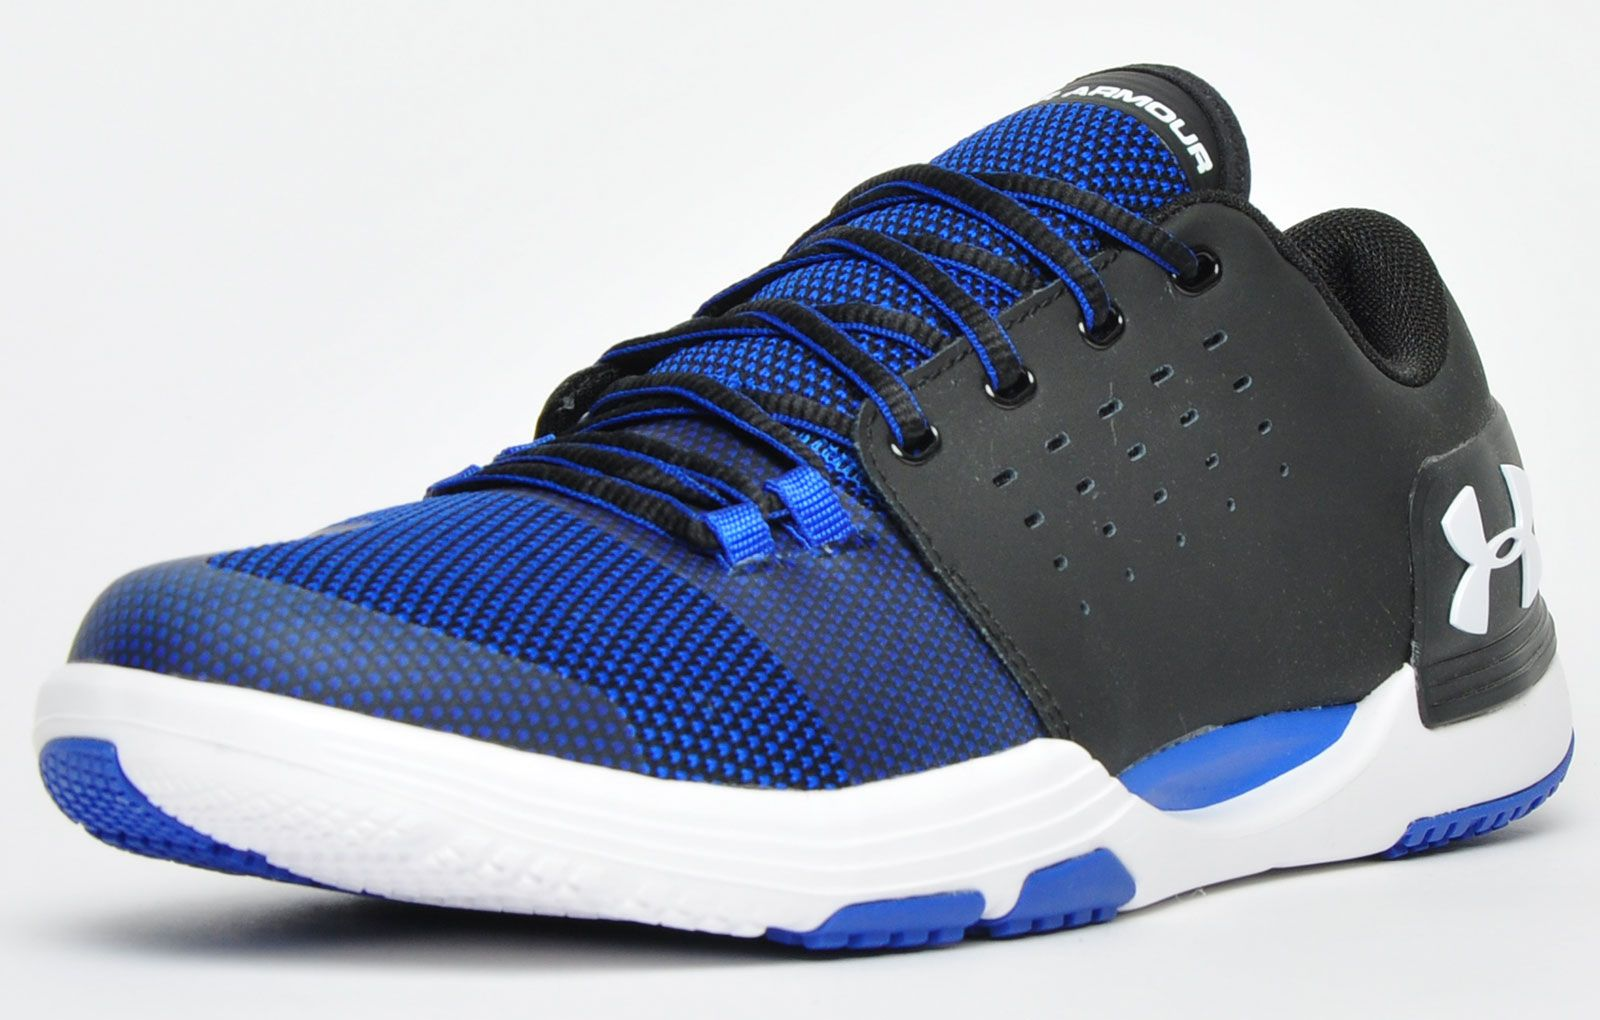 Under Armour Limitless TR 3.0 Mens